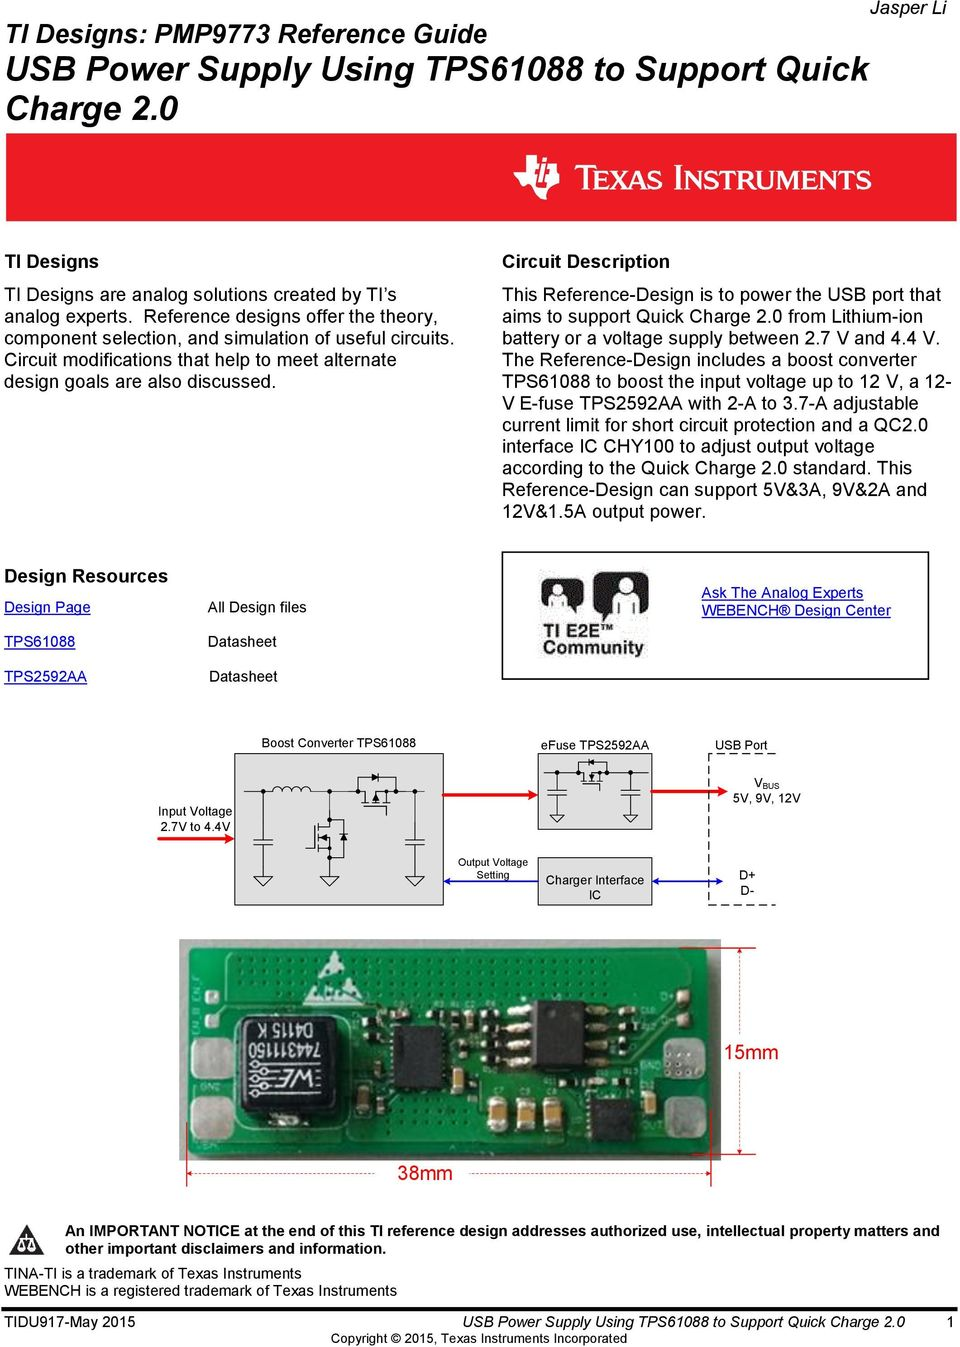 Ti Designs Pmp9773 Reference Guide Usb Power Supply Using Tps61088 To Wifi Adapter Circuit Diagram Datasheet Cross Description This Design Is The Port That Aims Support